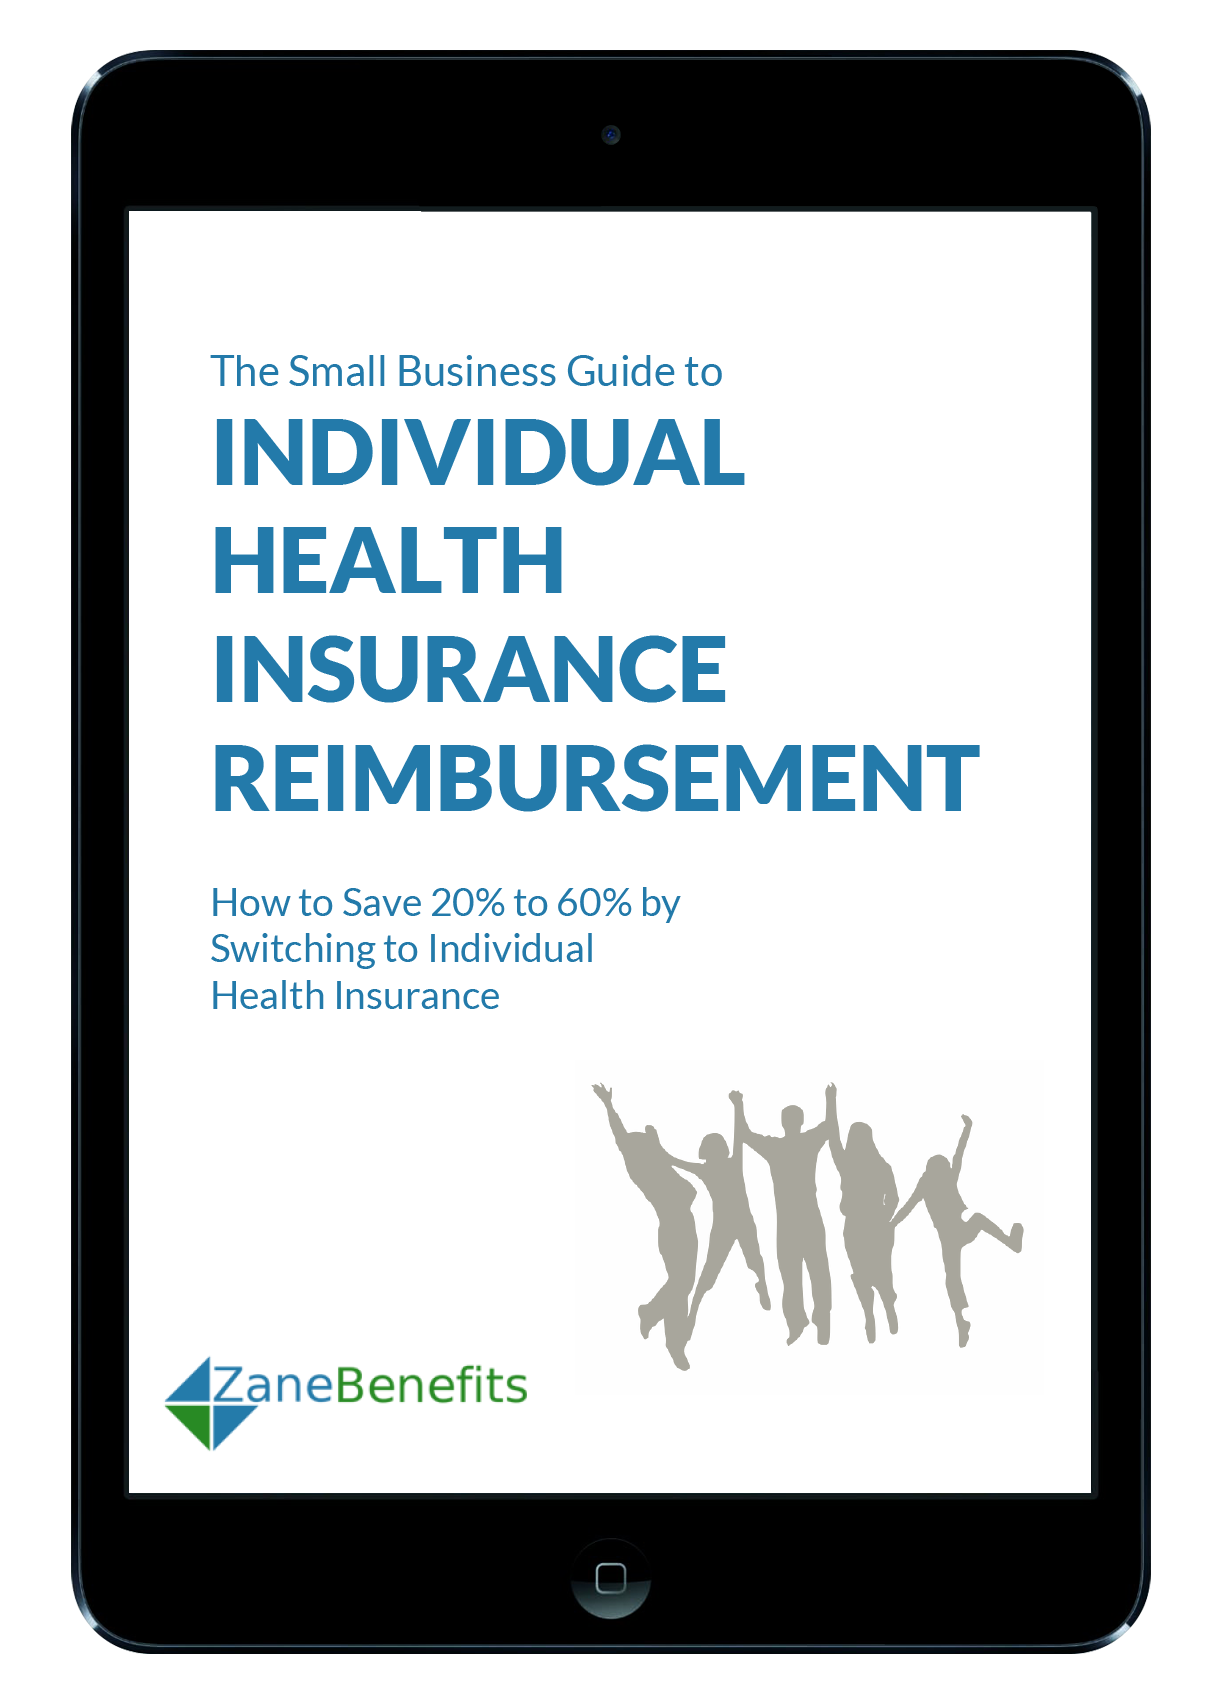 The Small Business Guide to Individual Health Insurance Reimbursement